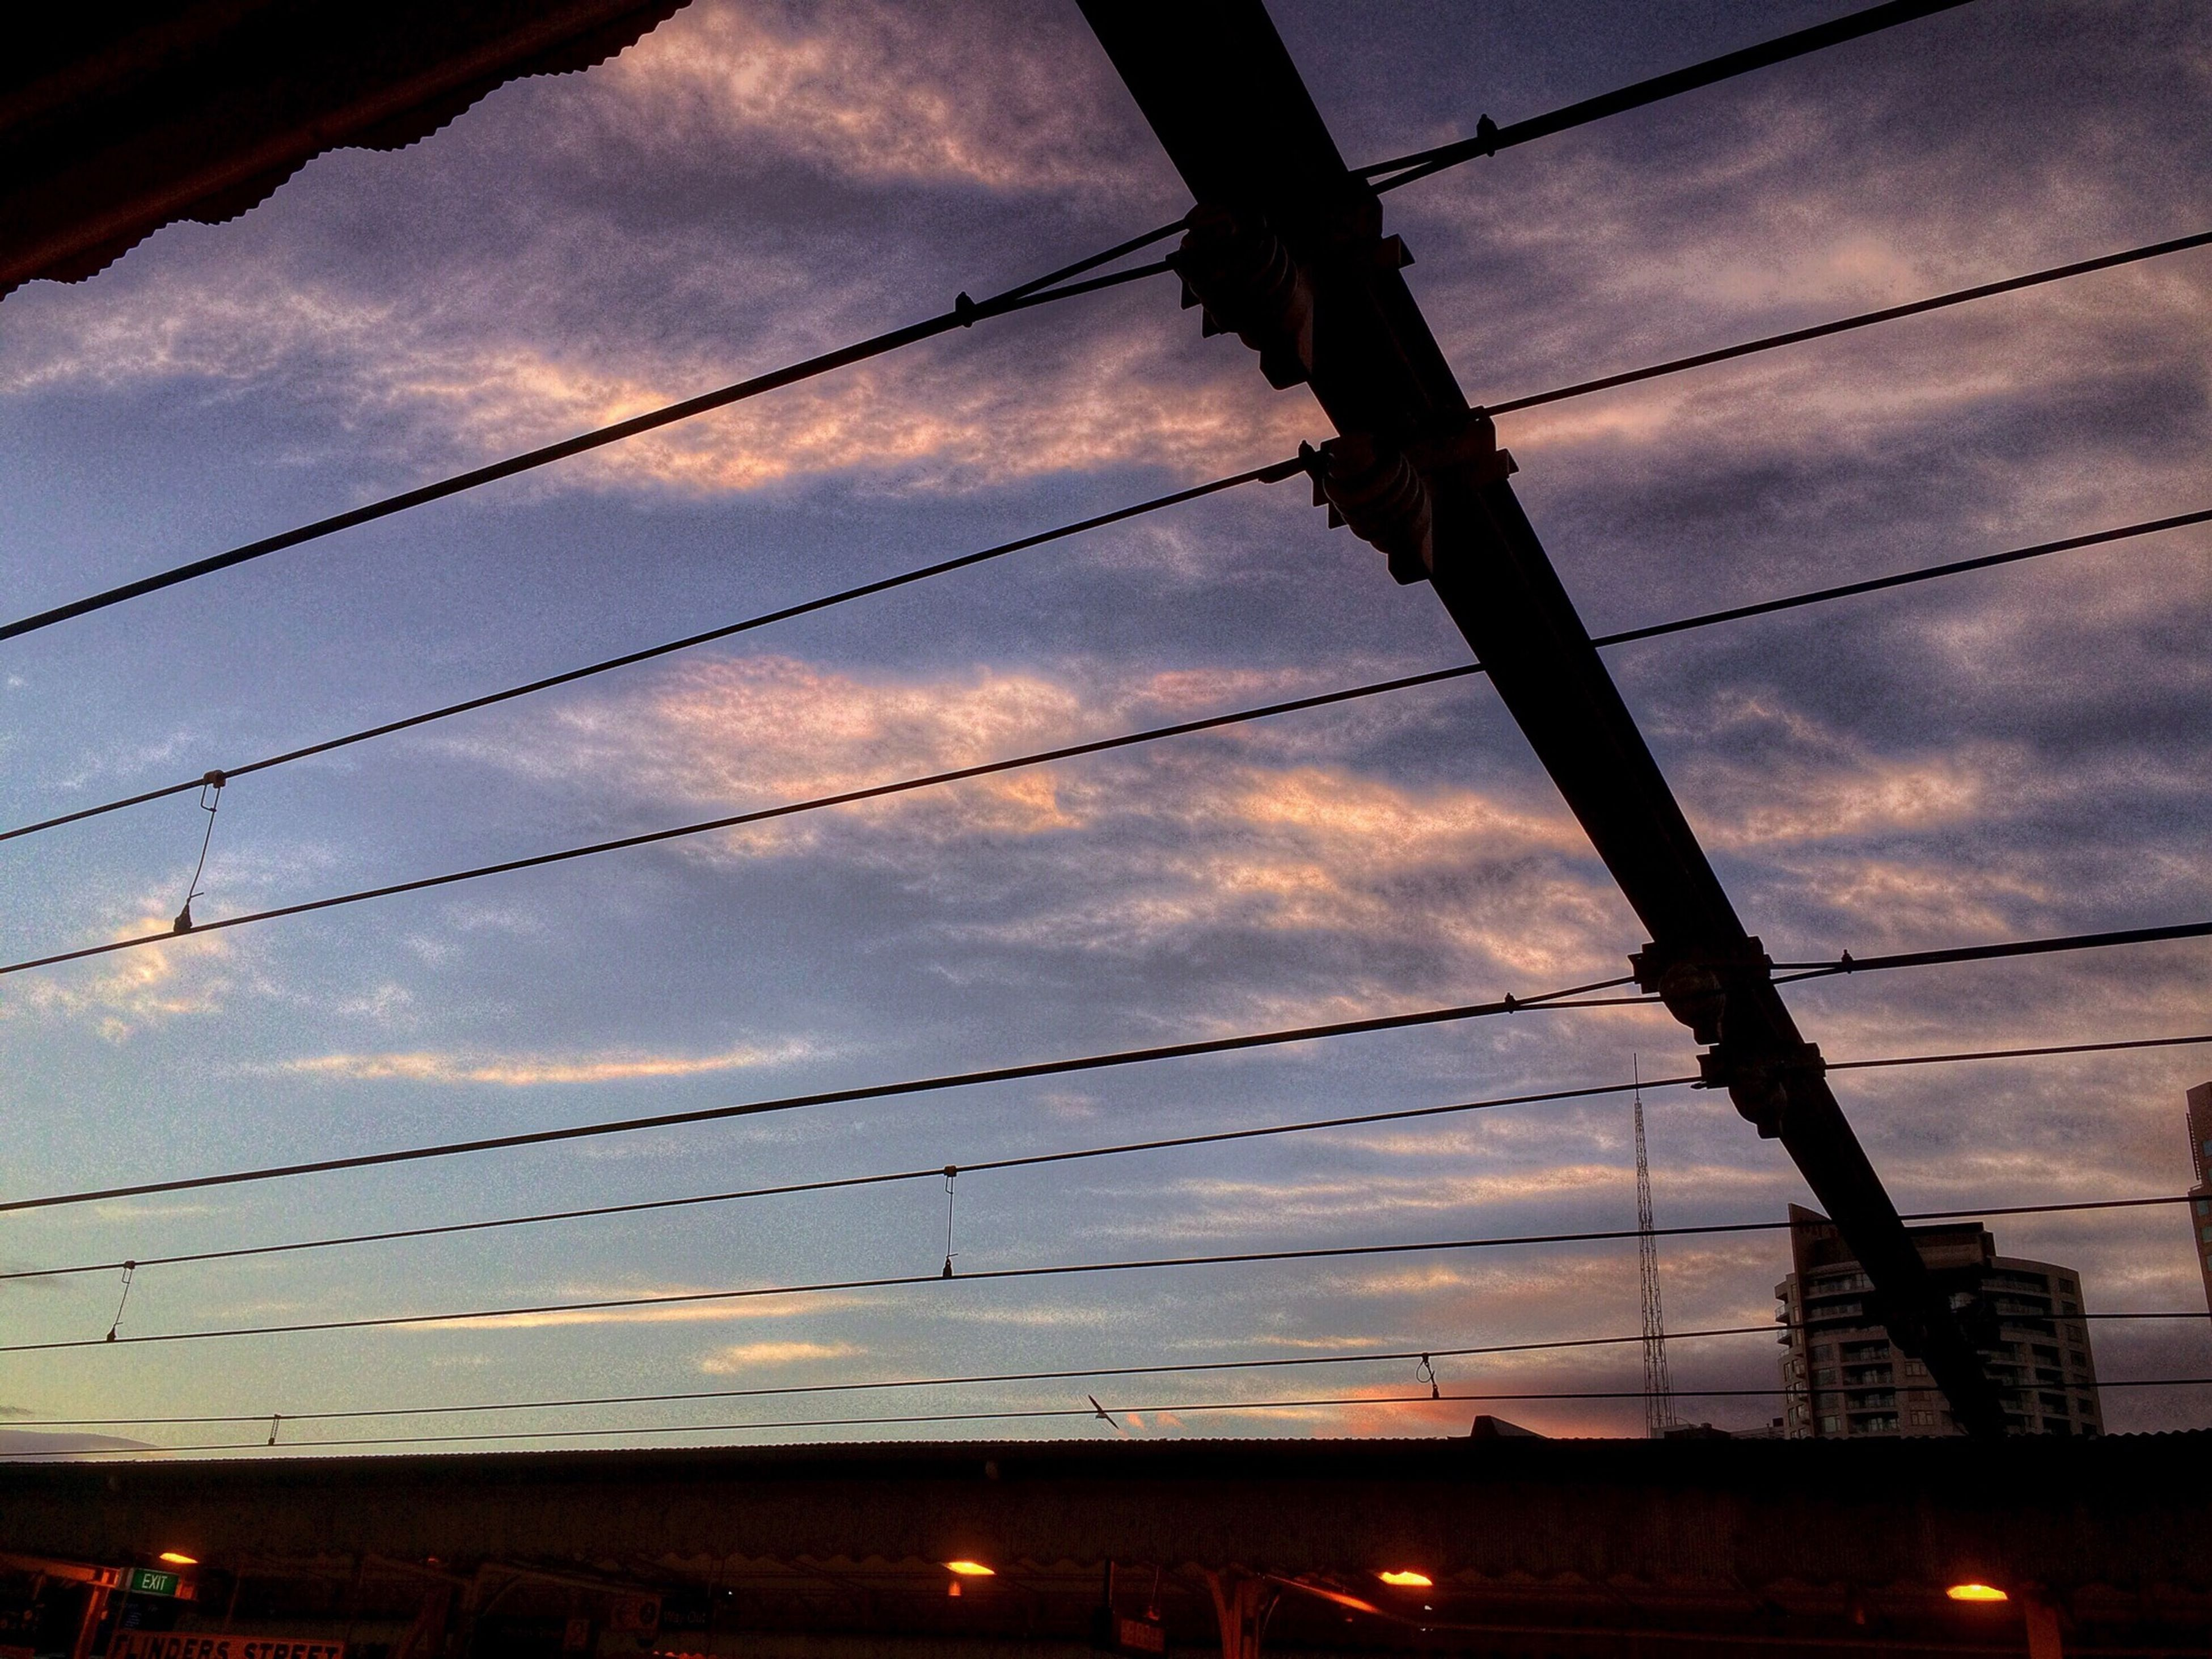 power line, low angle view, sky, cable, electricity, cloud - sky, electricity pylon, power supply, connection, silhouette, cloudy, built structure, cloud, architecture, sunset, power cable, fuel and power generation, dusk, technology, building exterior